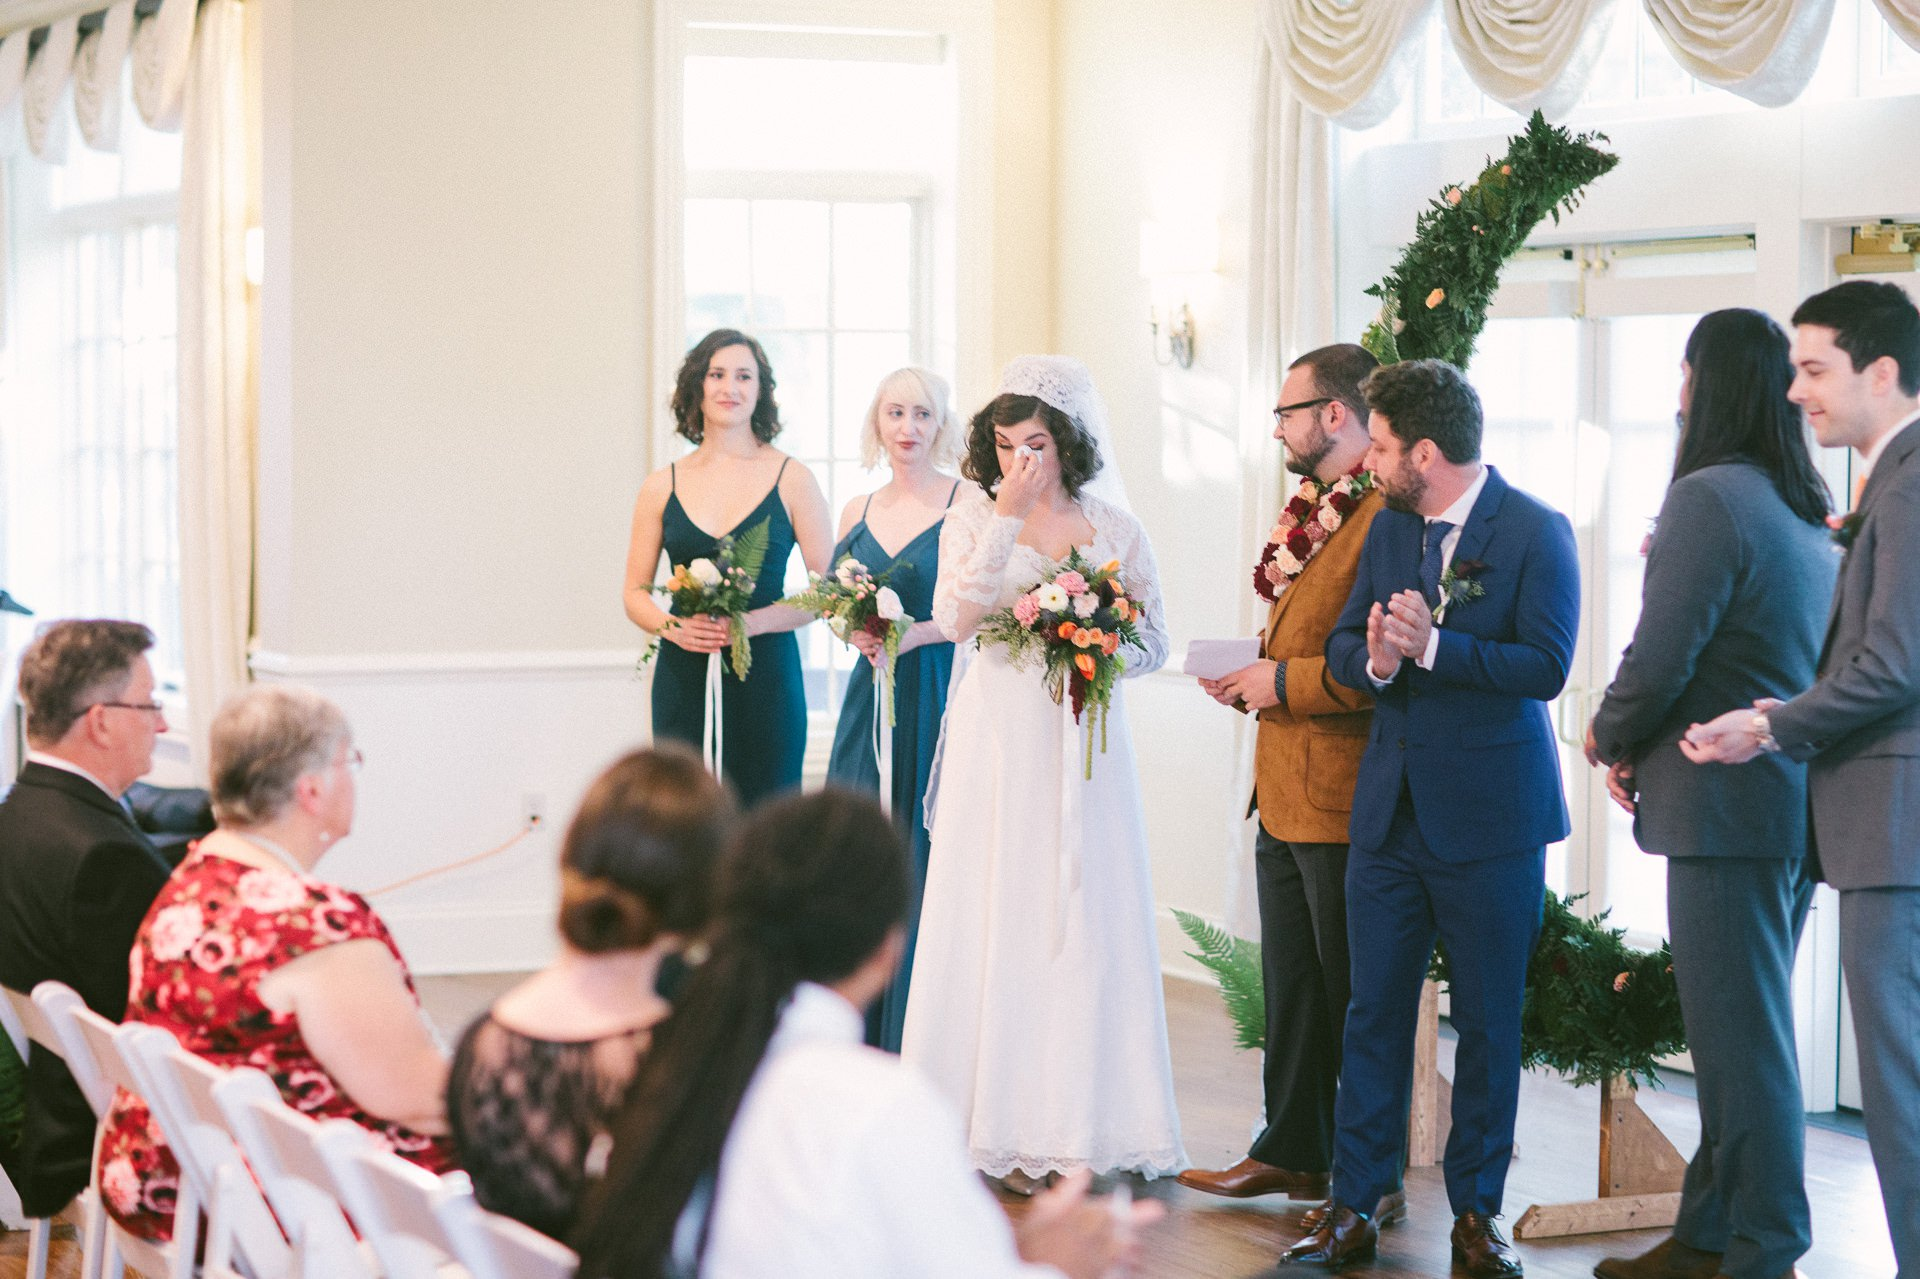 Wedding at the Glidden House in Cleveland 2 10.jpg